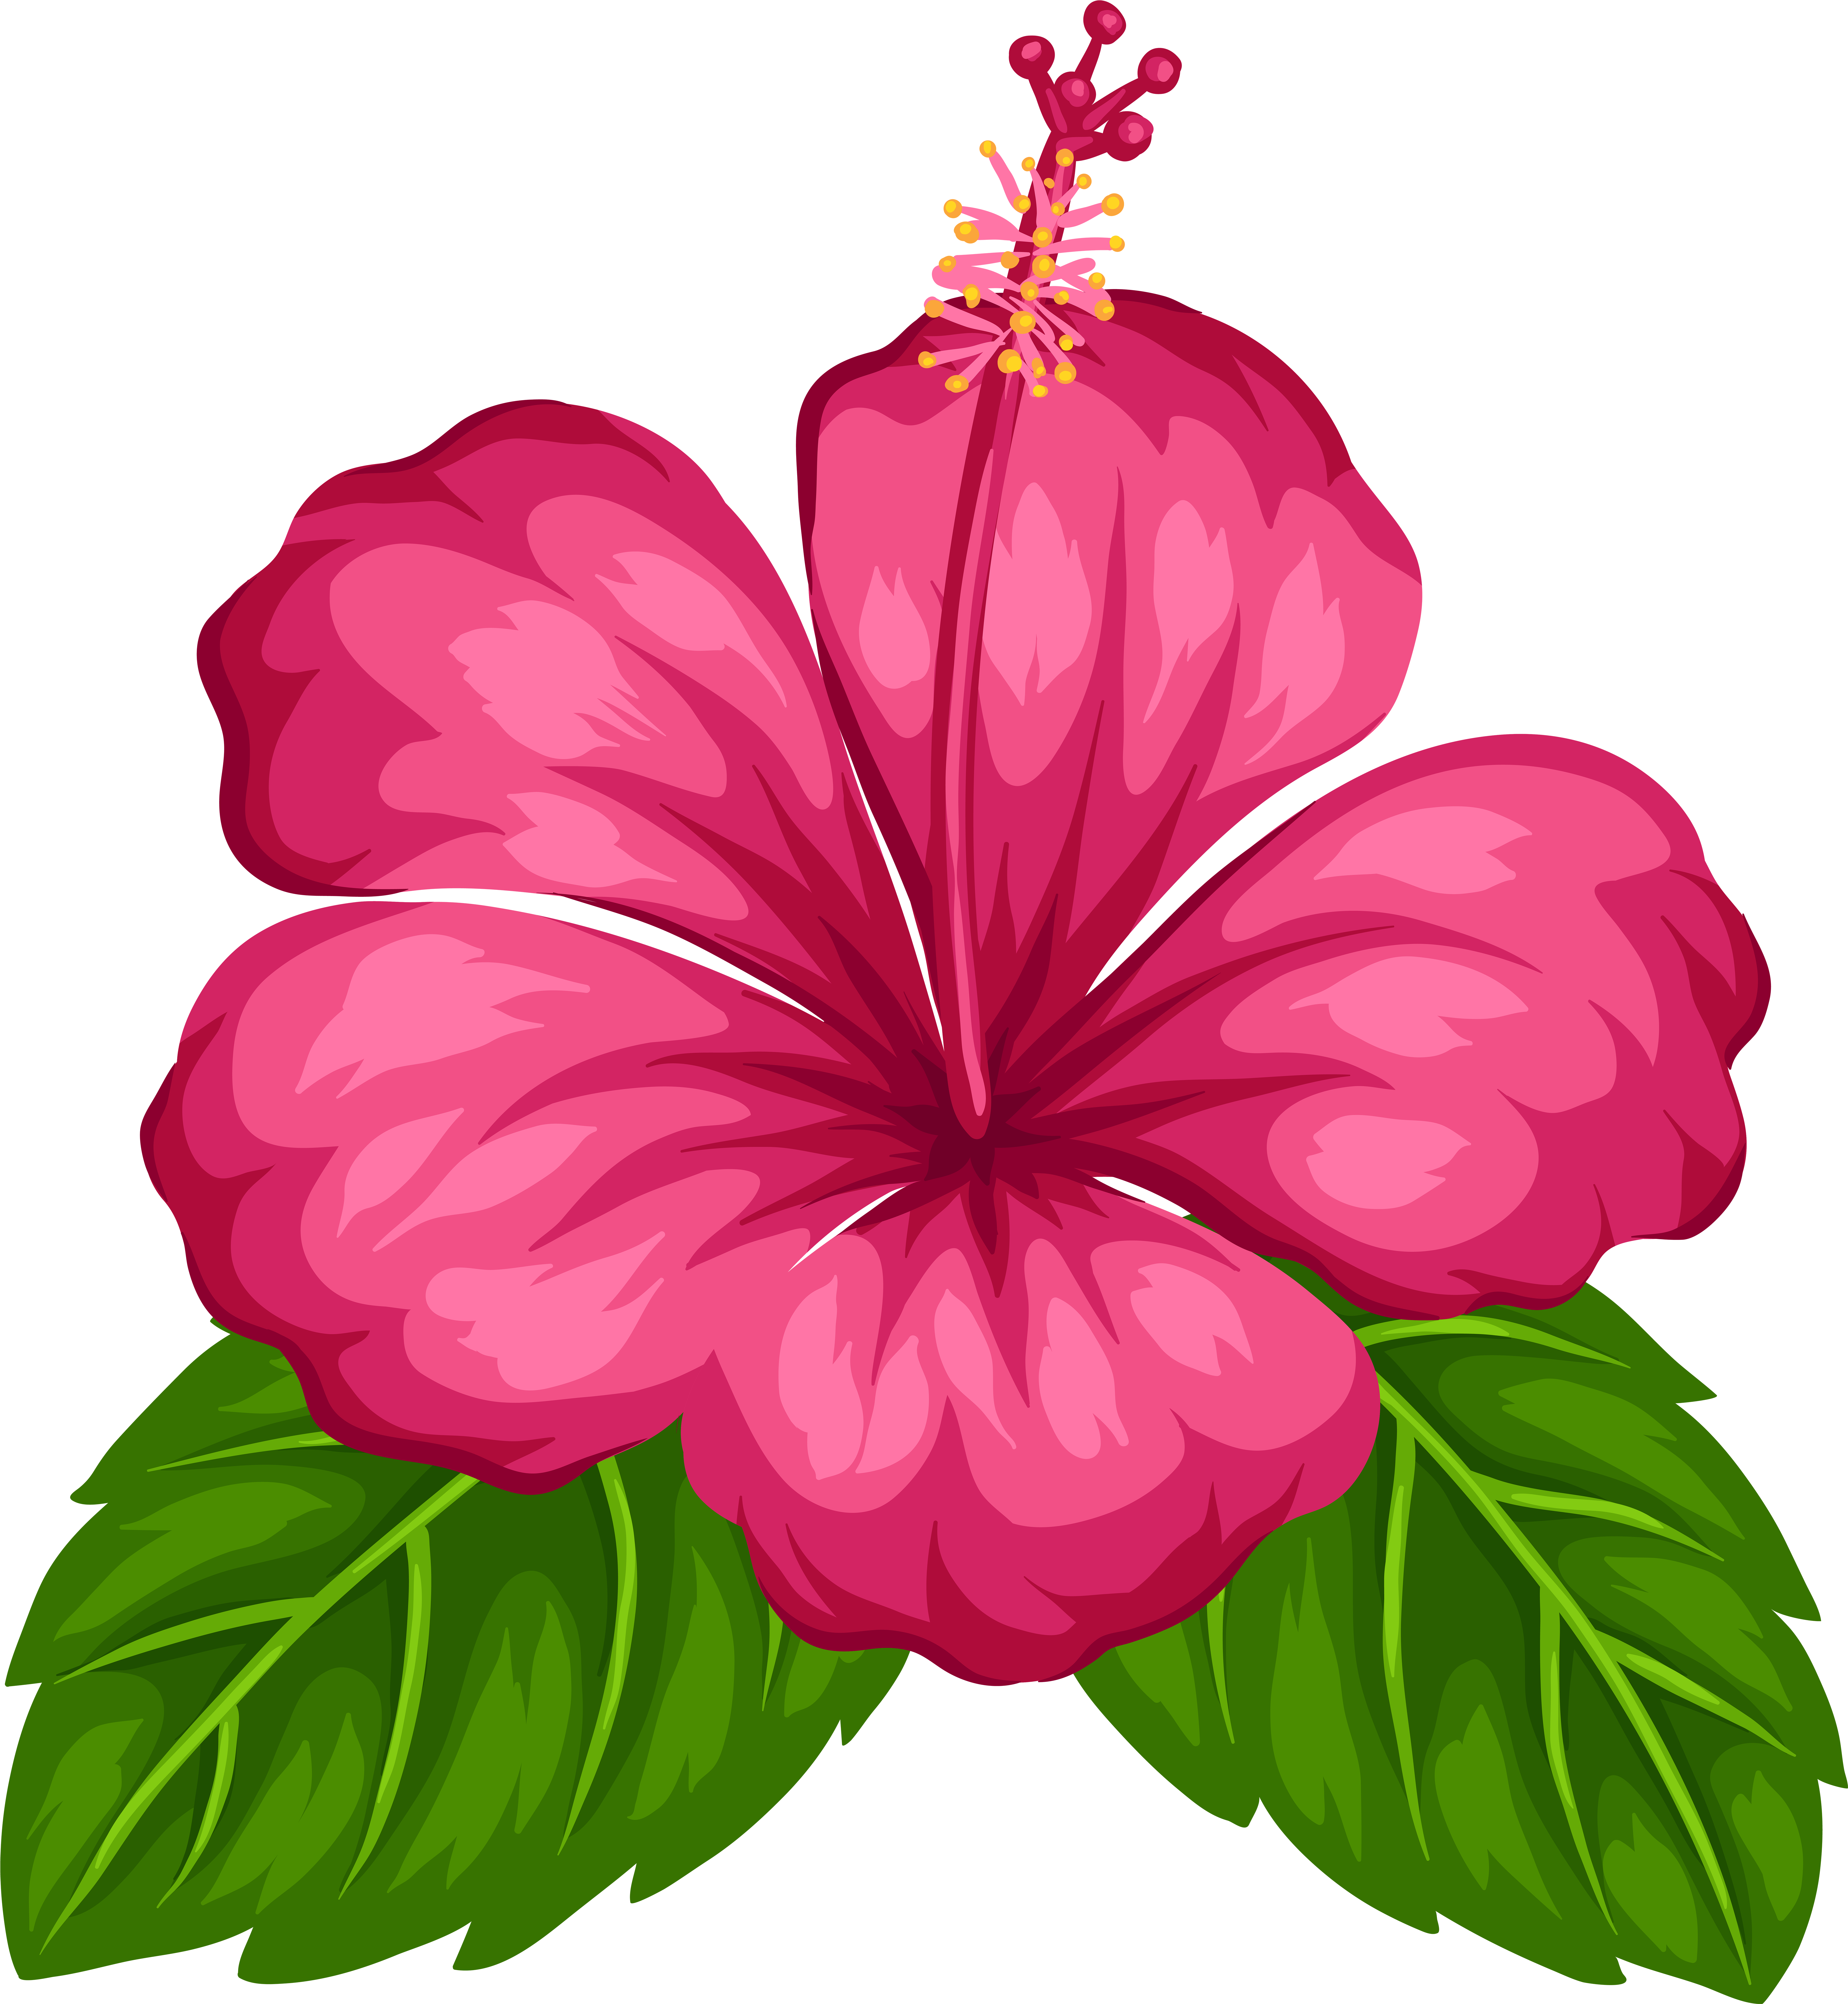 Bouquet Of Flowers Drawing Unlimited Download Cleanpng Com Hawaiian Flower Drawing Hibiscus Flower Drawing Tropical Flowers Illustration